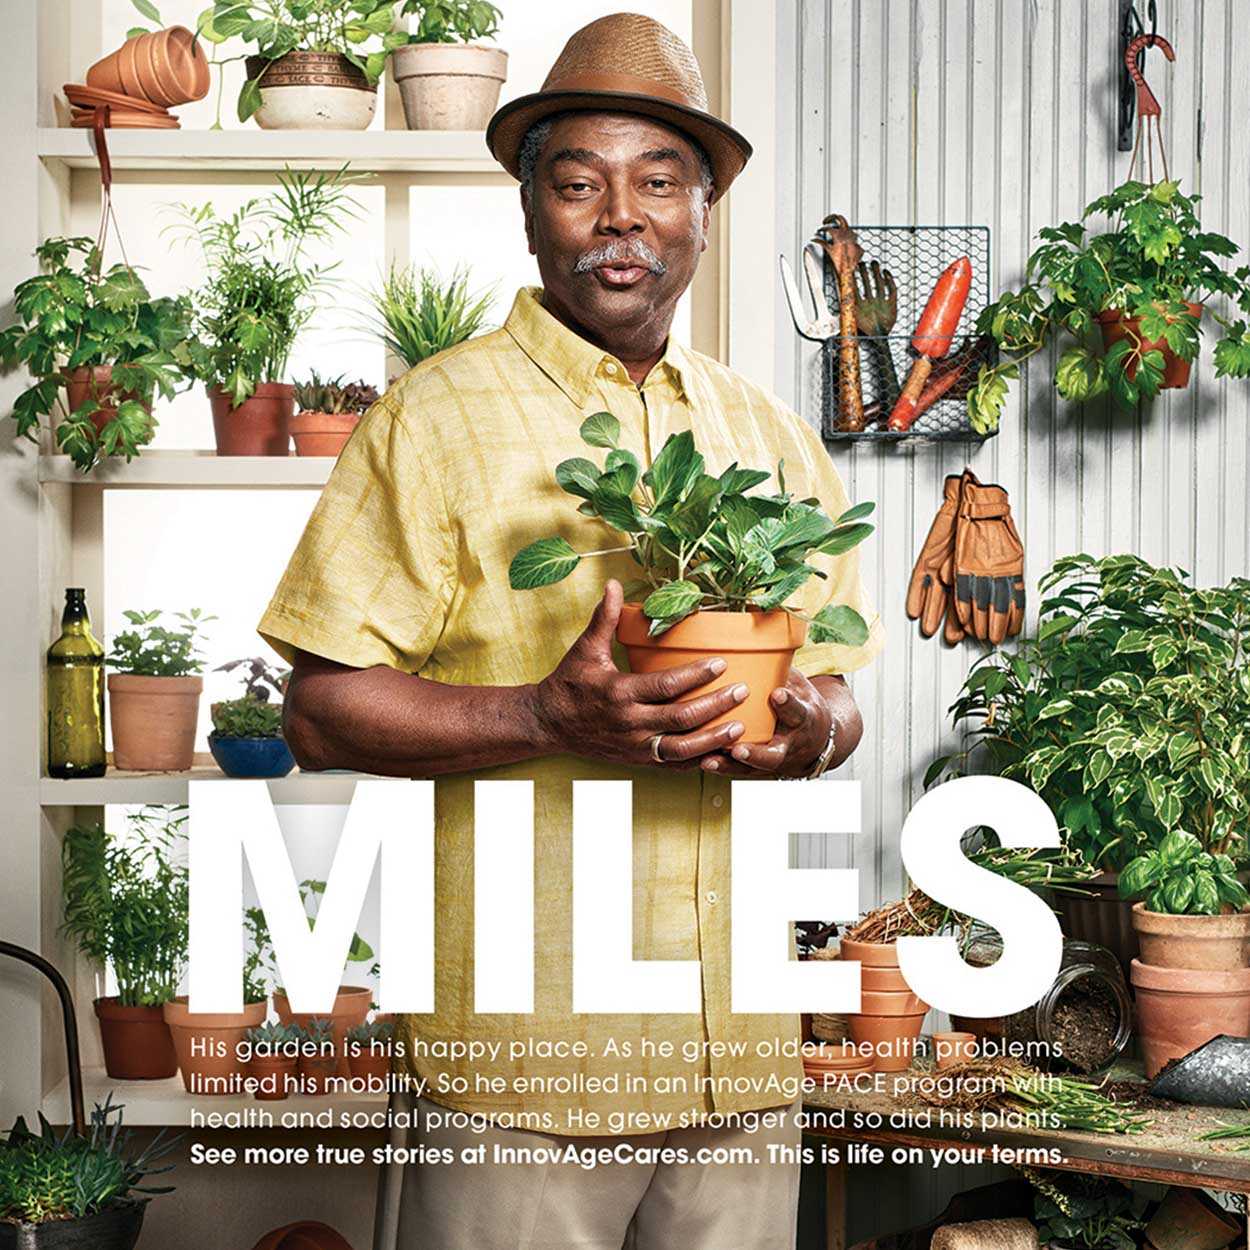 Print advertisement featuring a older man surrounded by plants.